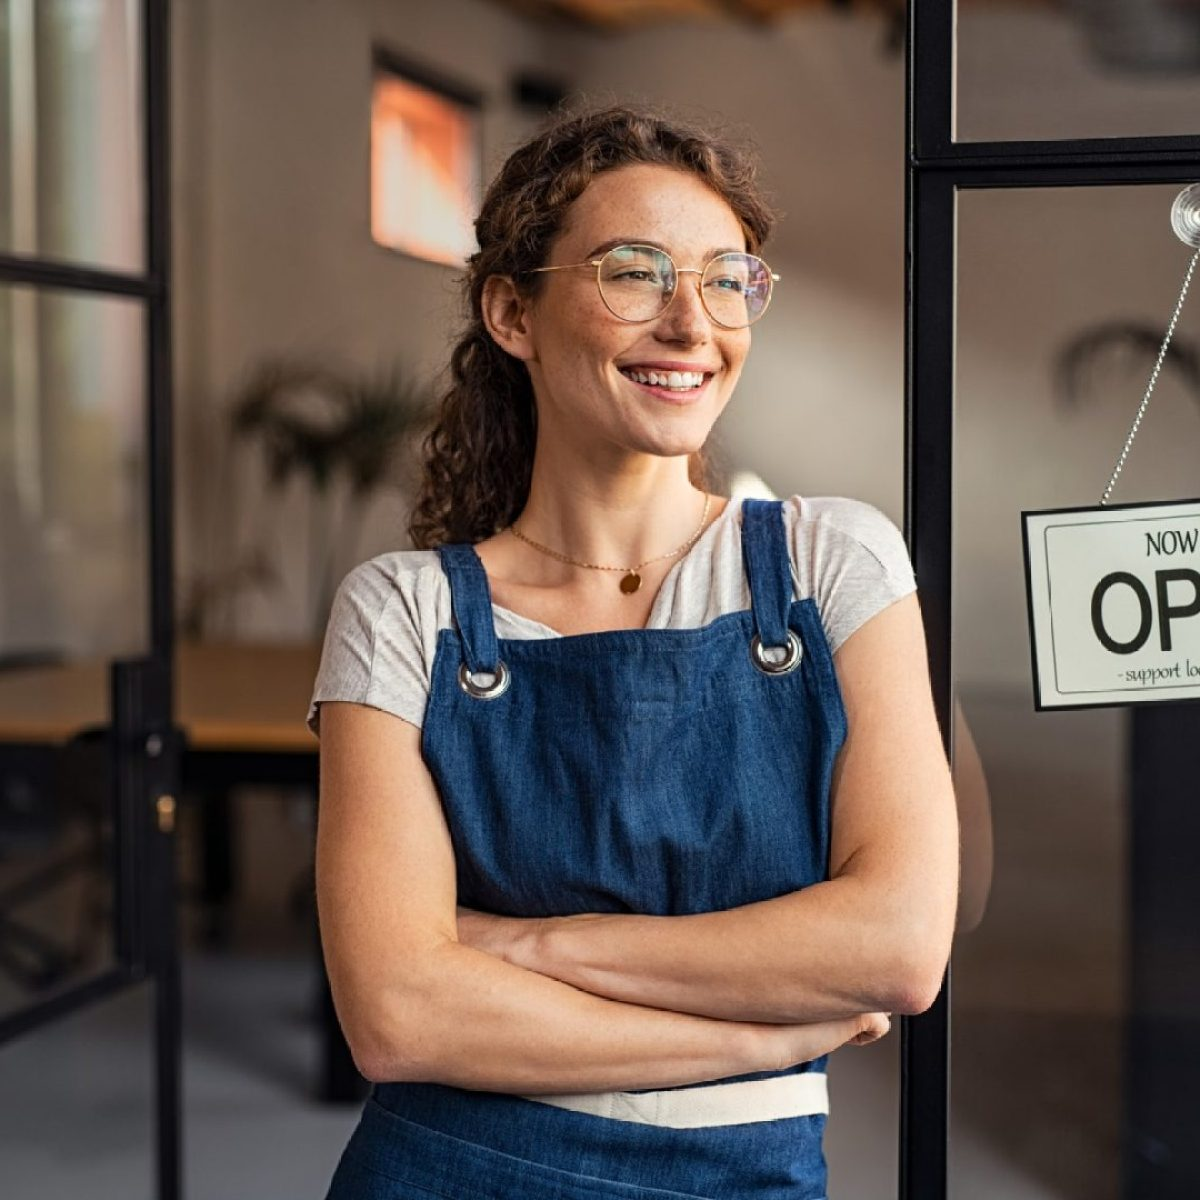 new business start-up owner standing in front of cafe with open sign